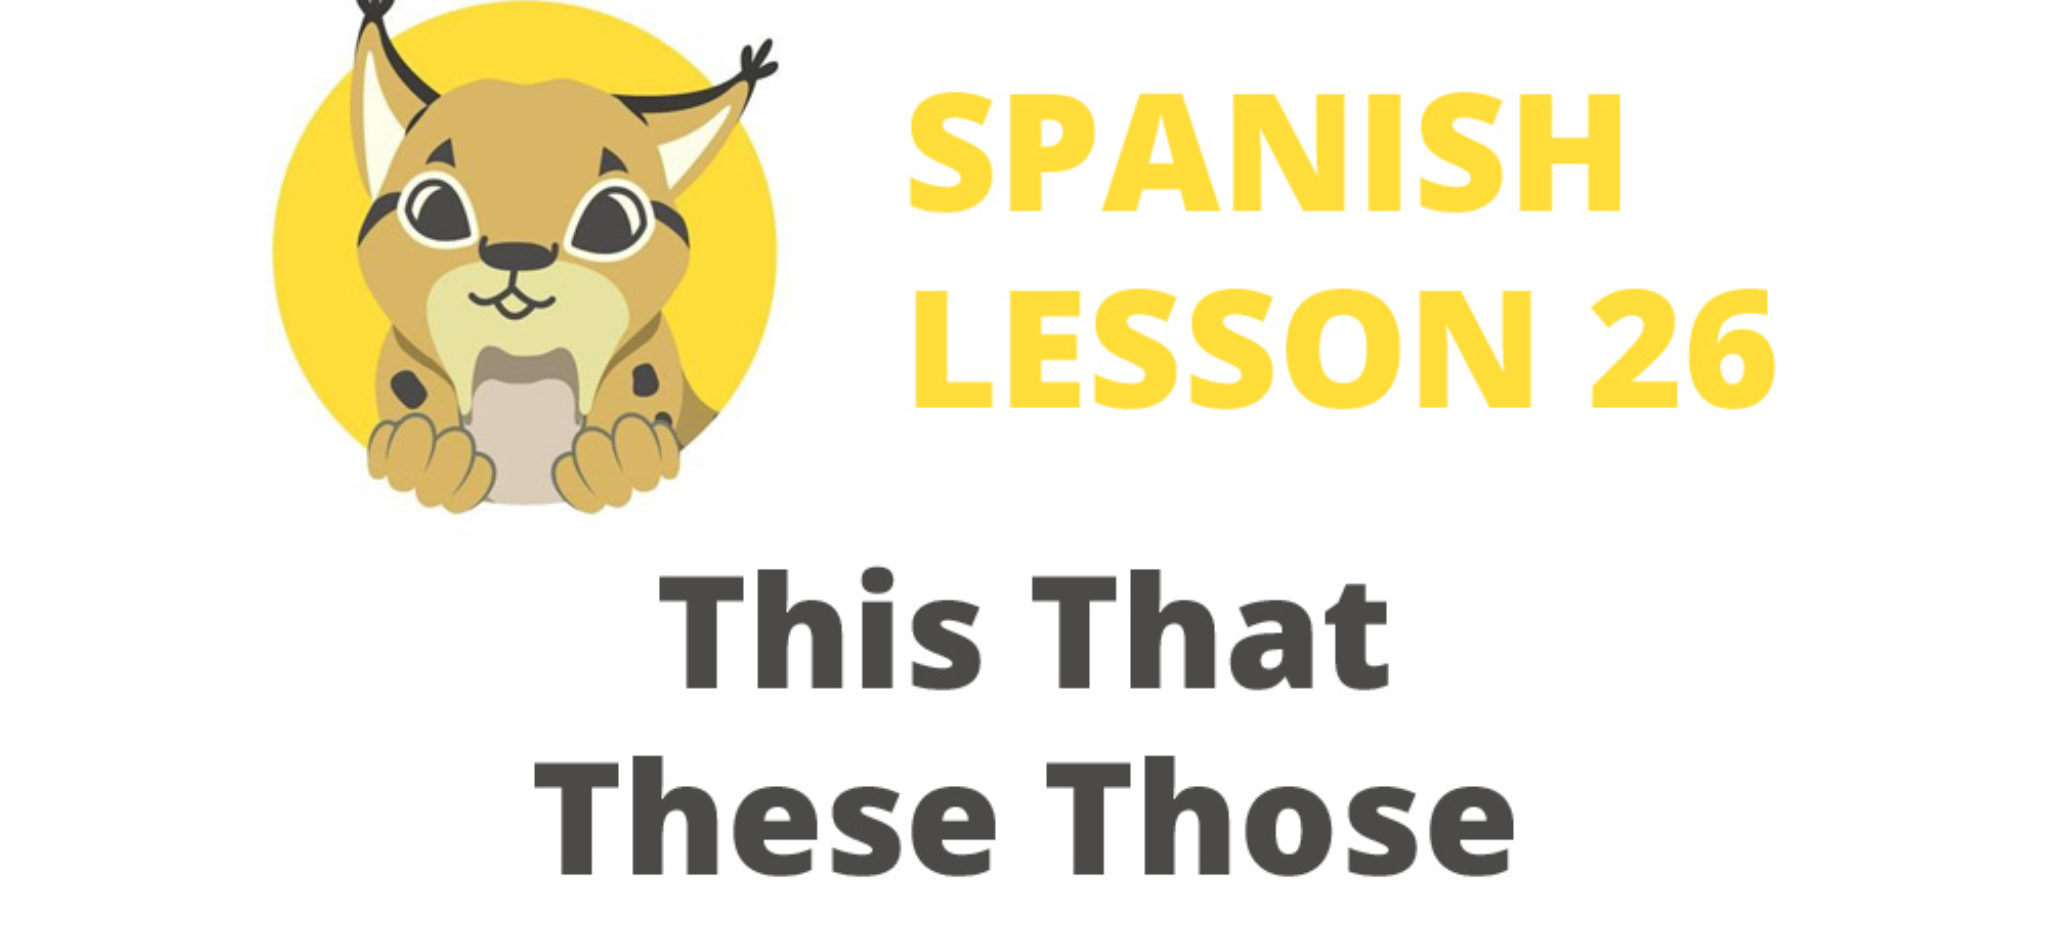 This That These Those in Spanish